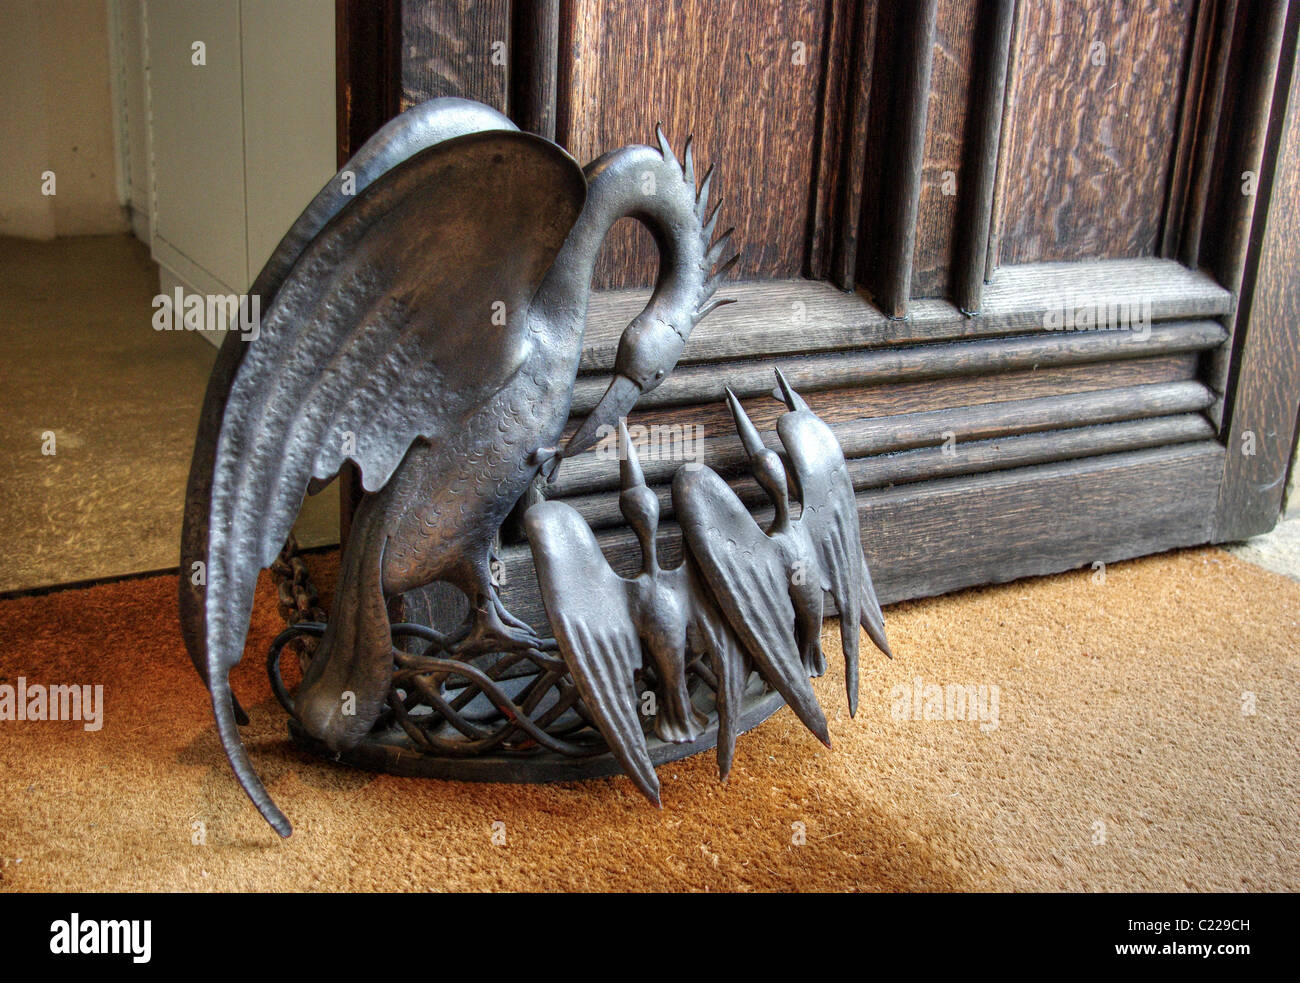 Animal Door Stops Uk Ornate Metallic Door Stop At Corpus Christi College Cambridge Uk